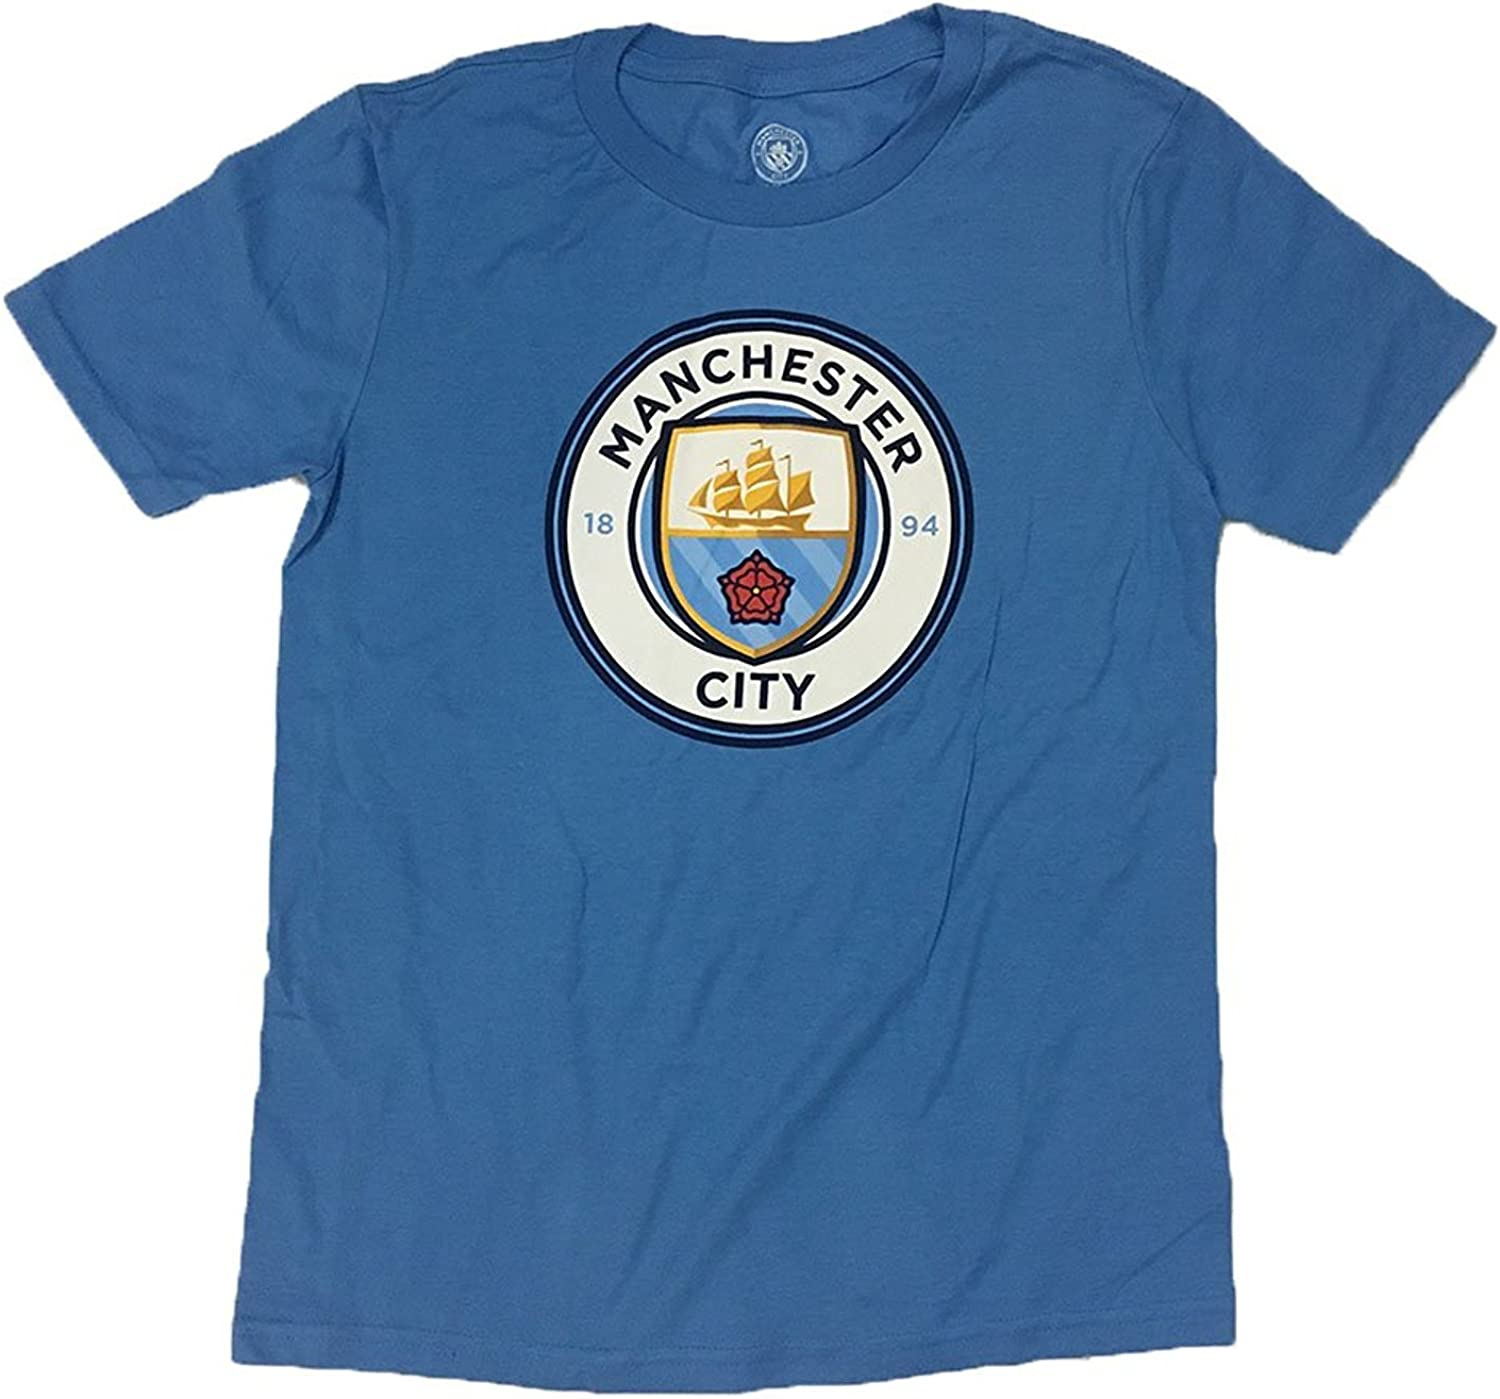 Dollaro Rudyard Kipling Monumentale  Amazon.com: adidas Manchester City Youth Crest Logo Shirt (X-Large) Blue:  Clothing